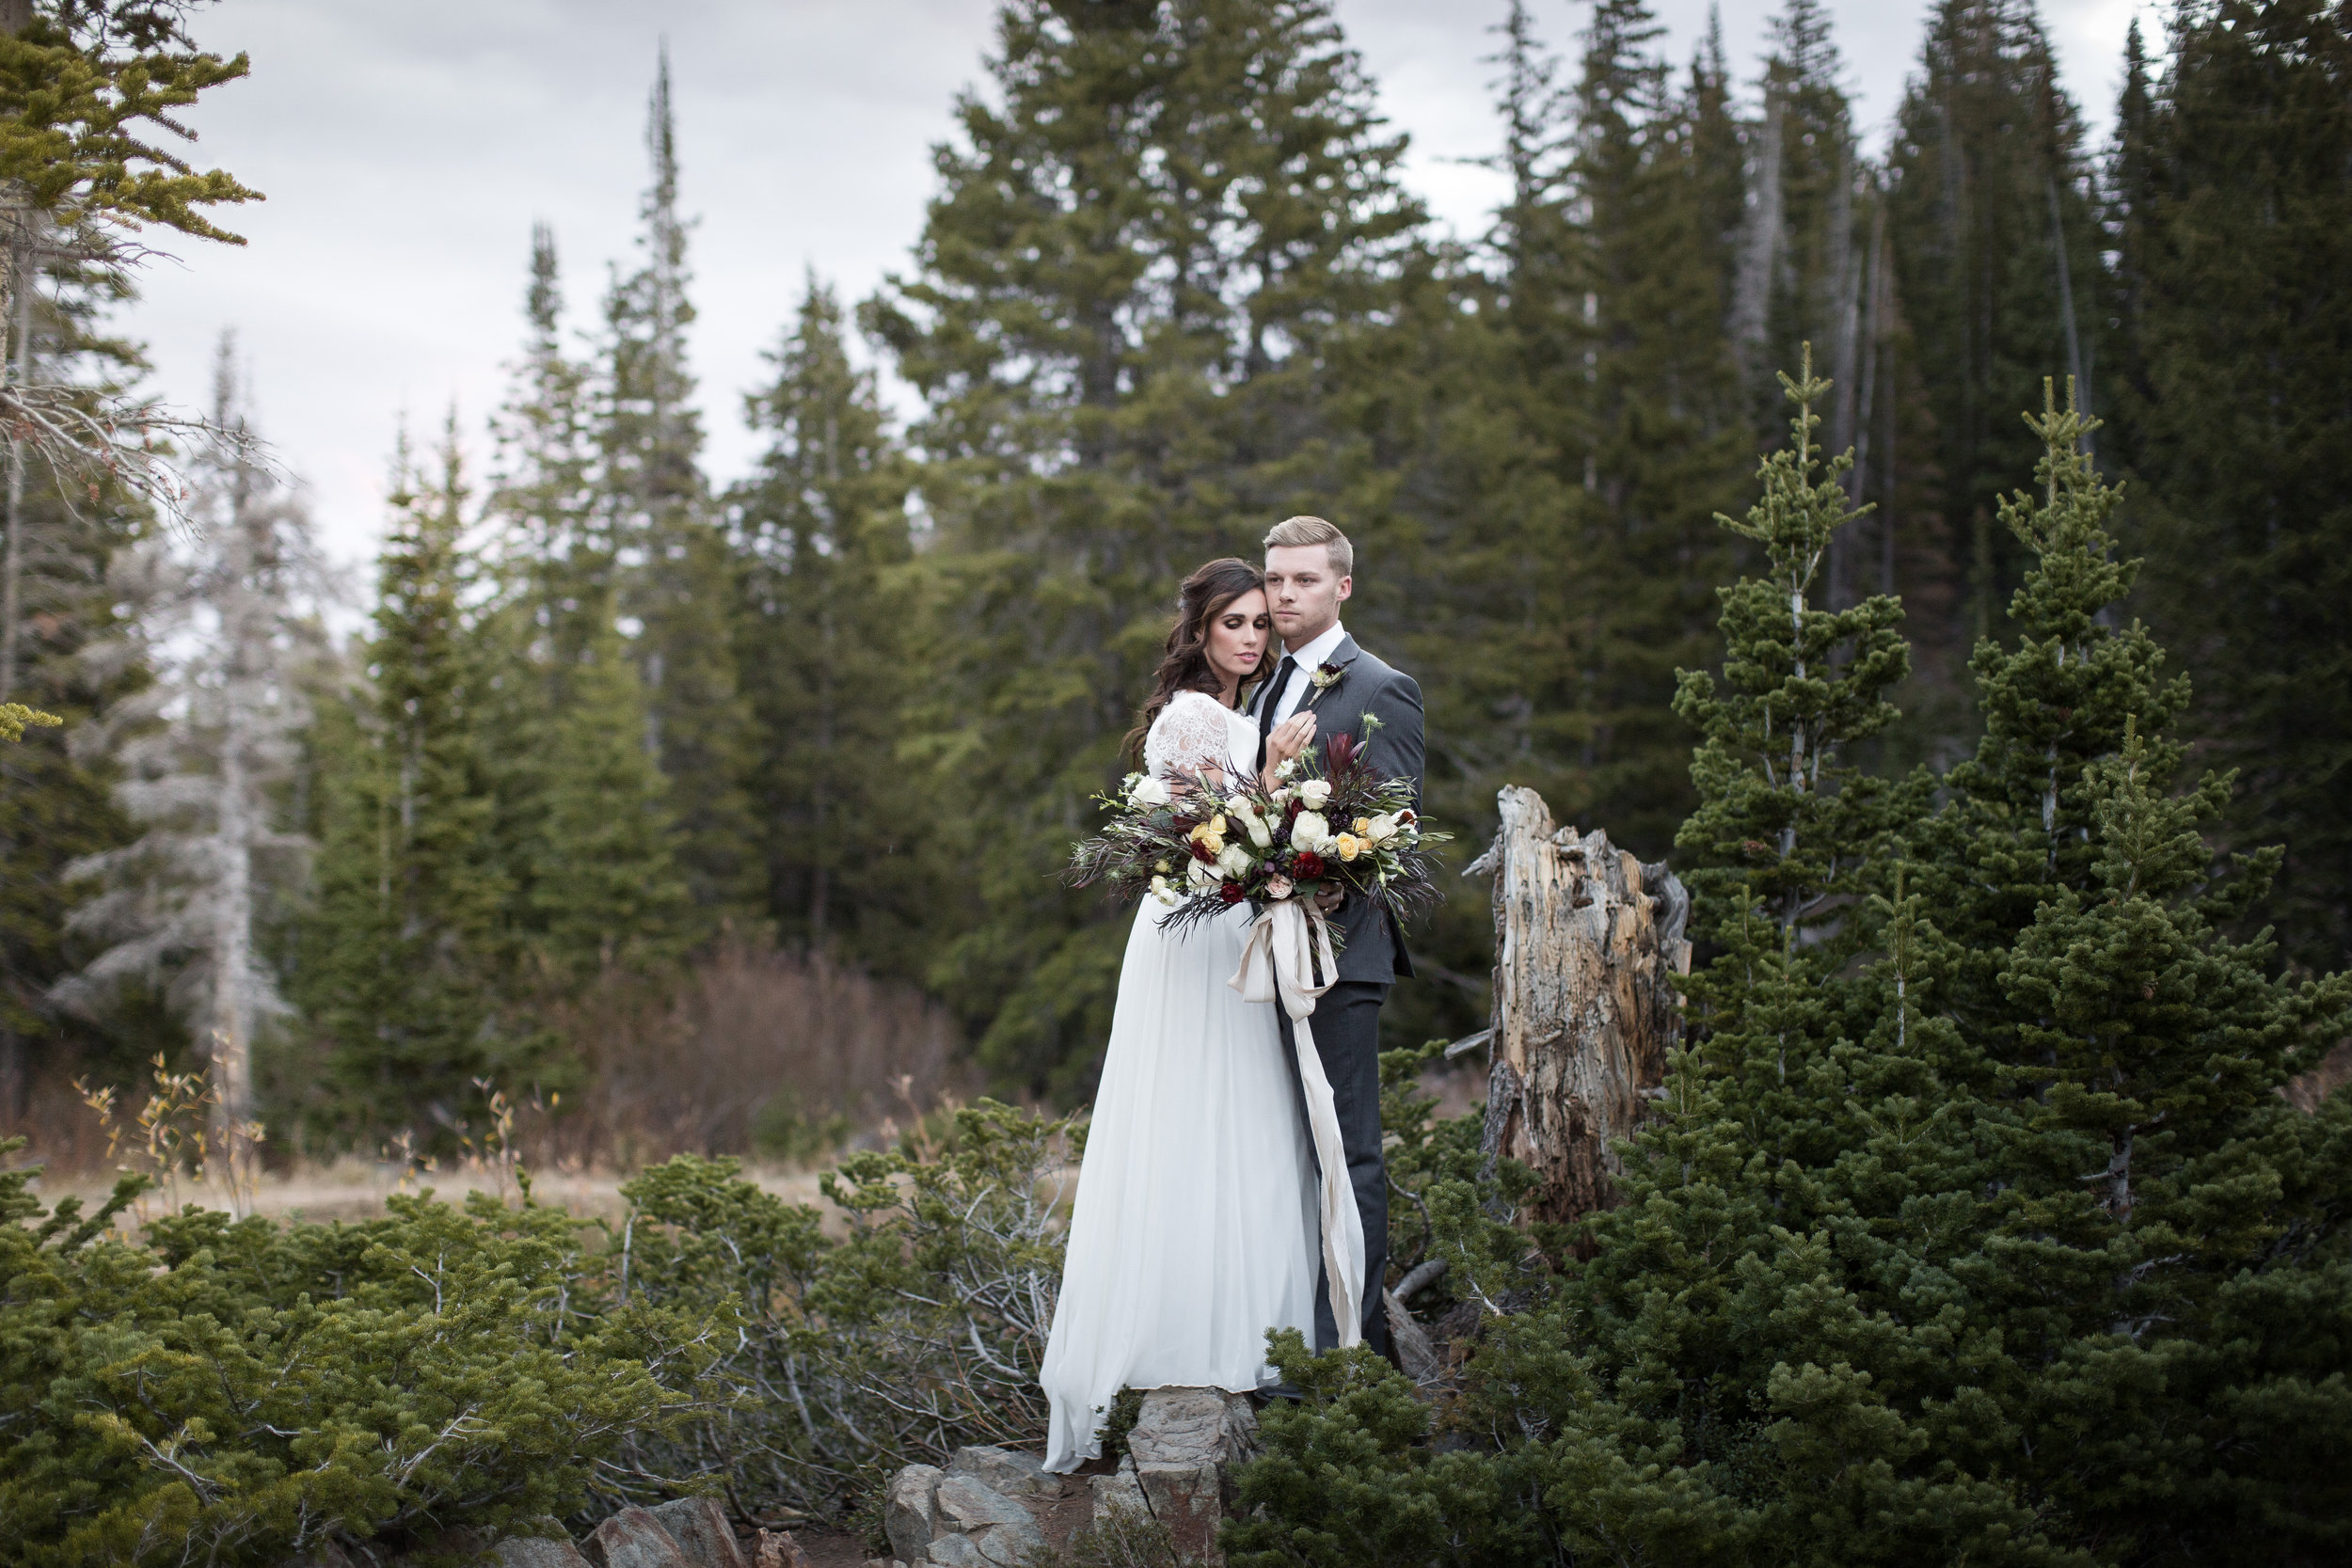 UtahValleyBrideShootTR2016 (2 of 110).jpg